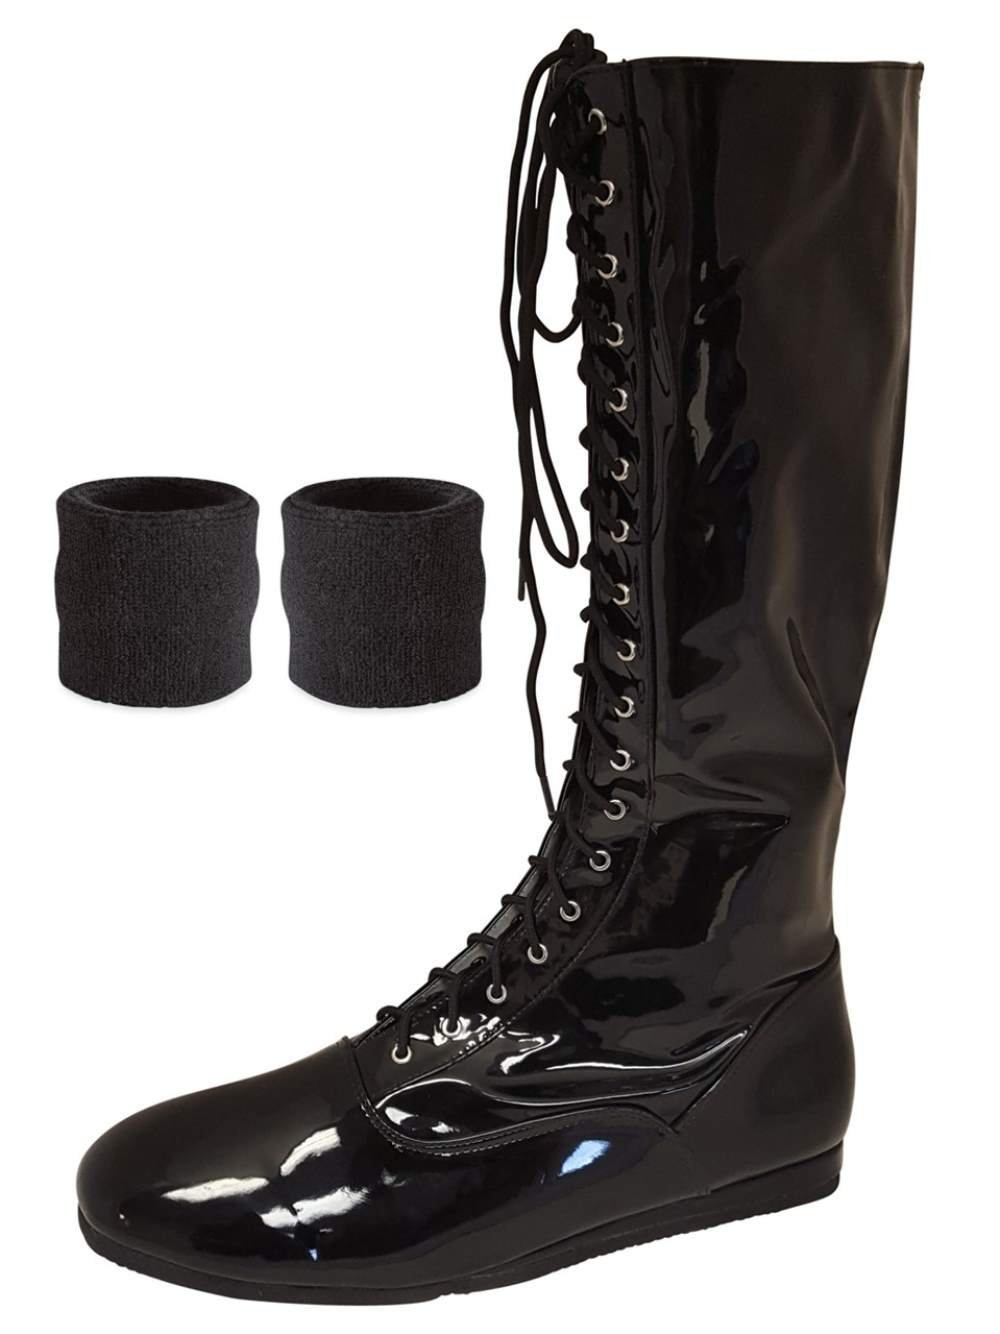 (Black, Small) Pro Wrestling Costume Boots with Matching Sweatbands